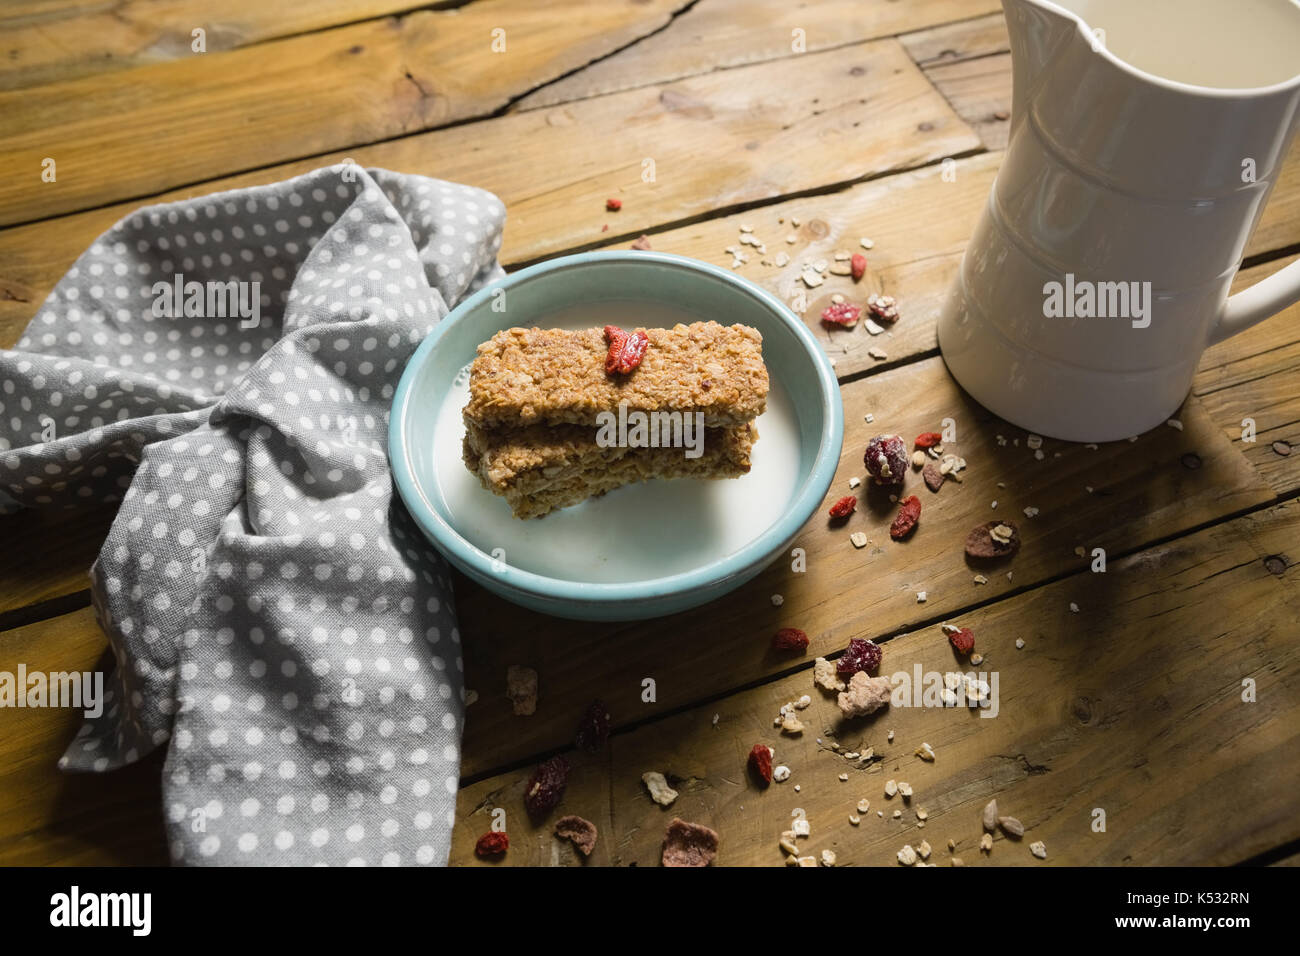 Close-up of granola bar and milk in bowl - Stock Image